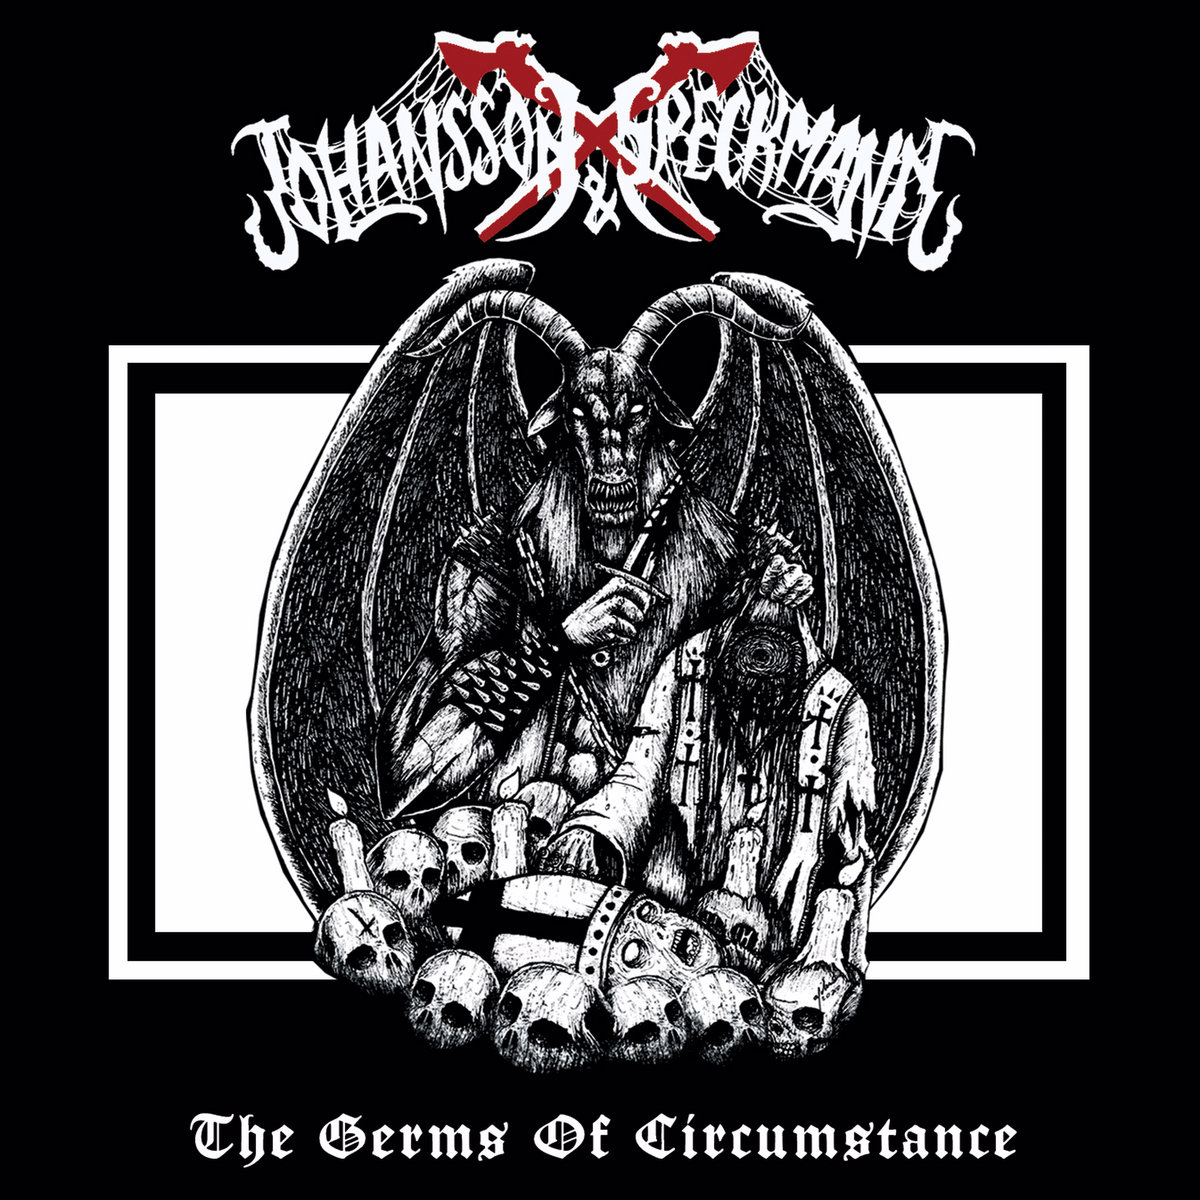 The Germs Of Circumstance Johansson & Speckmann Cover Artwork